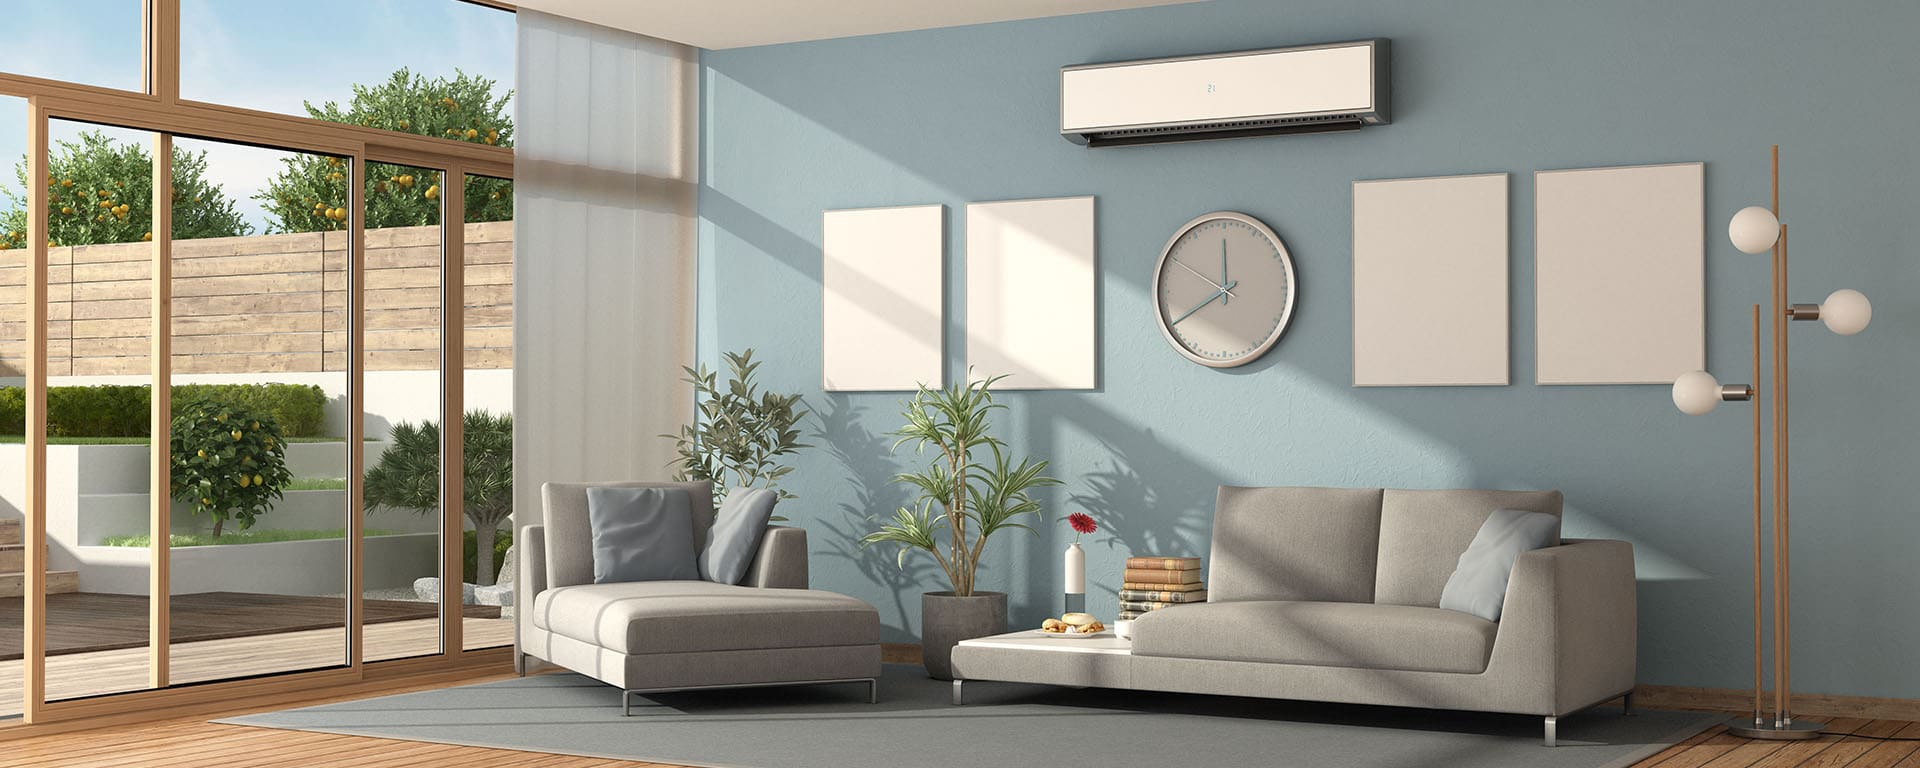 Blue living room of a modern villa with sofa ,chaise lounge and air conditioner - 3d rendering